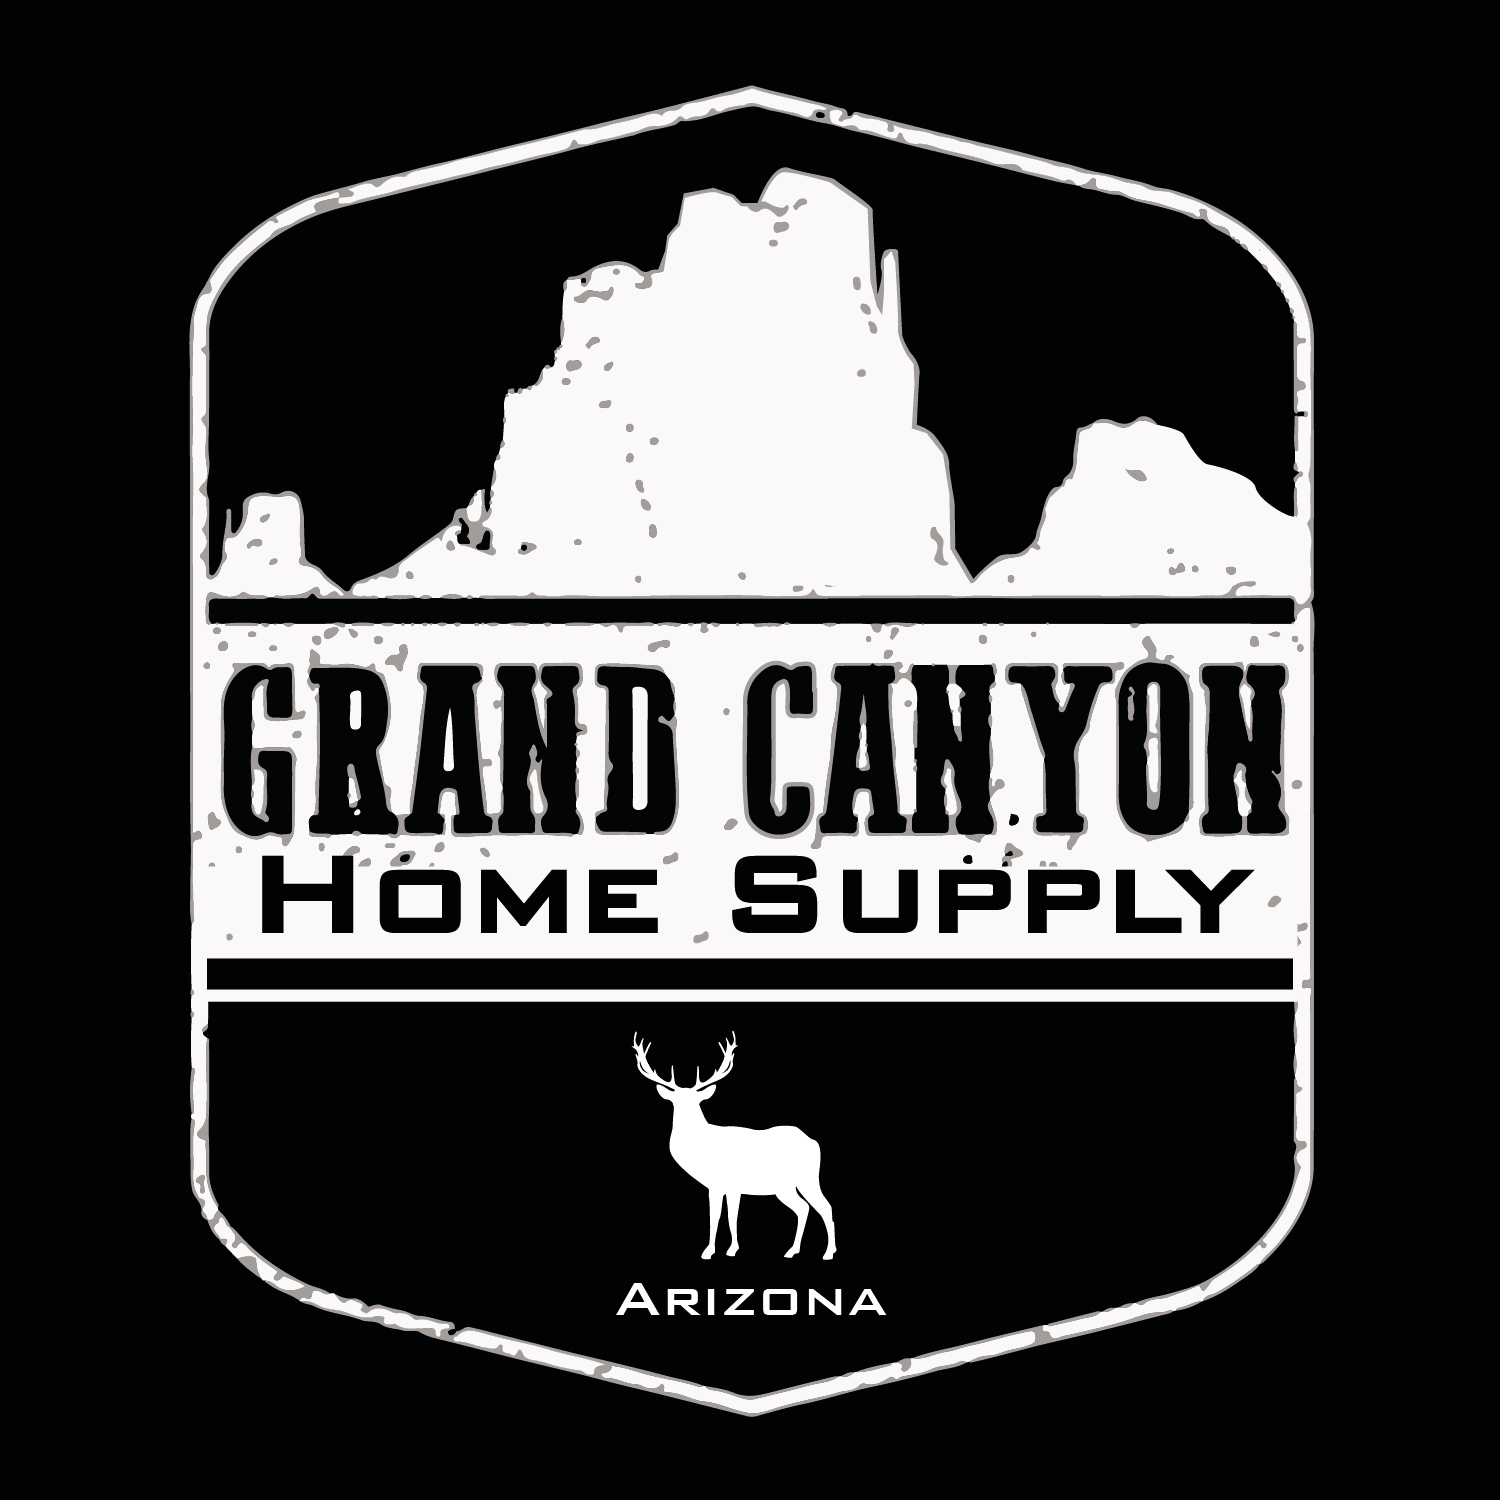 Grand Canyon Home Supply